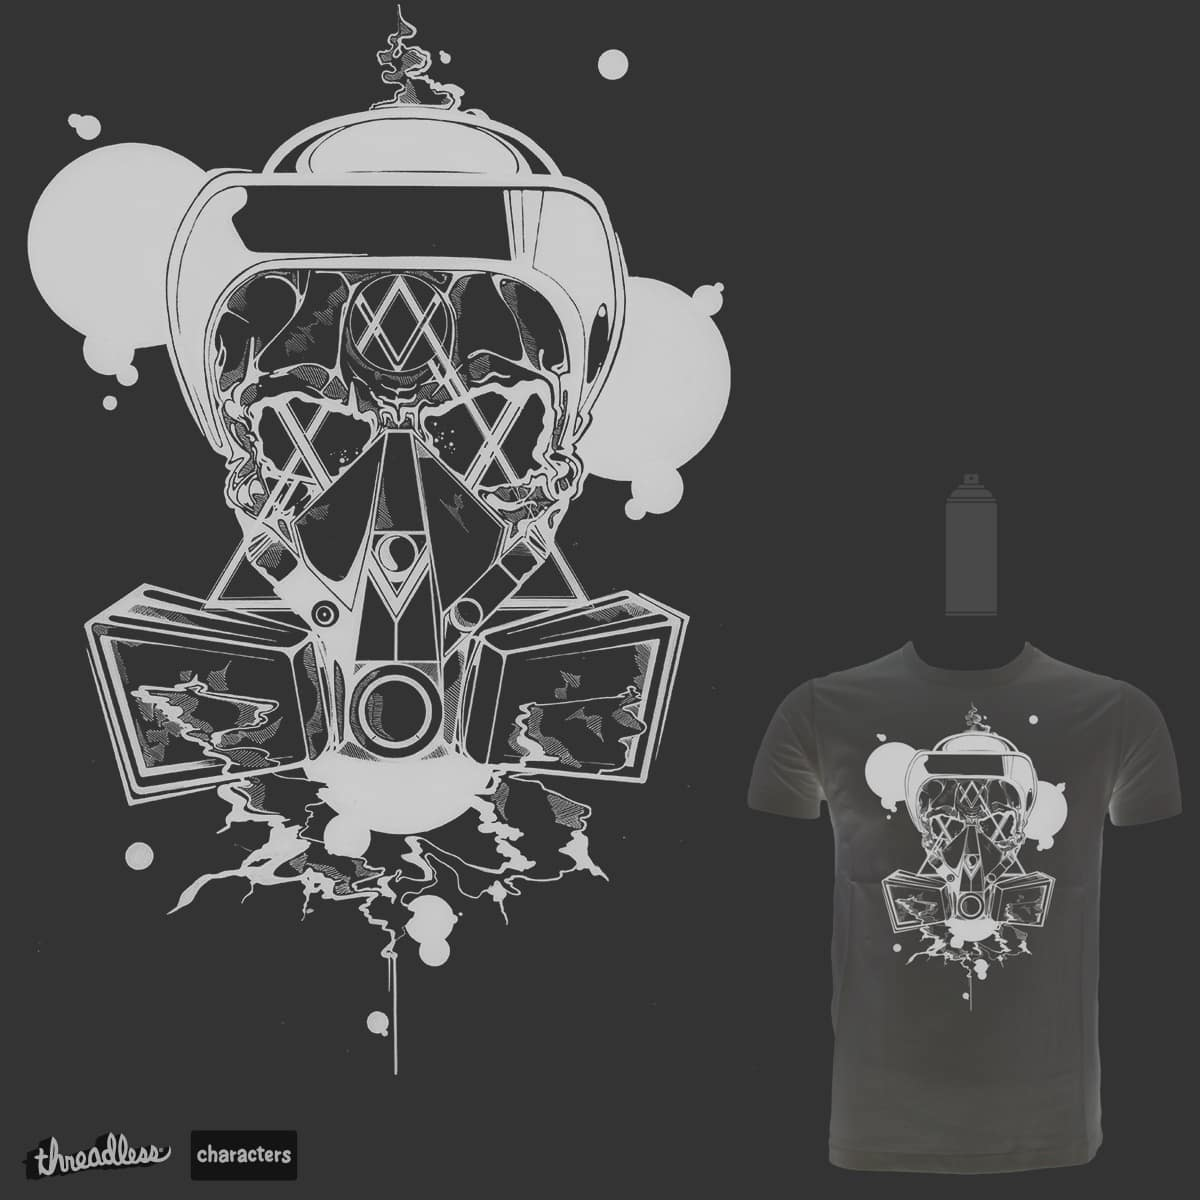 Respirator by CASPRone on Threadless